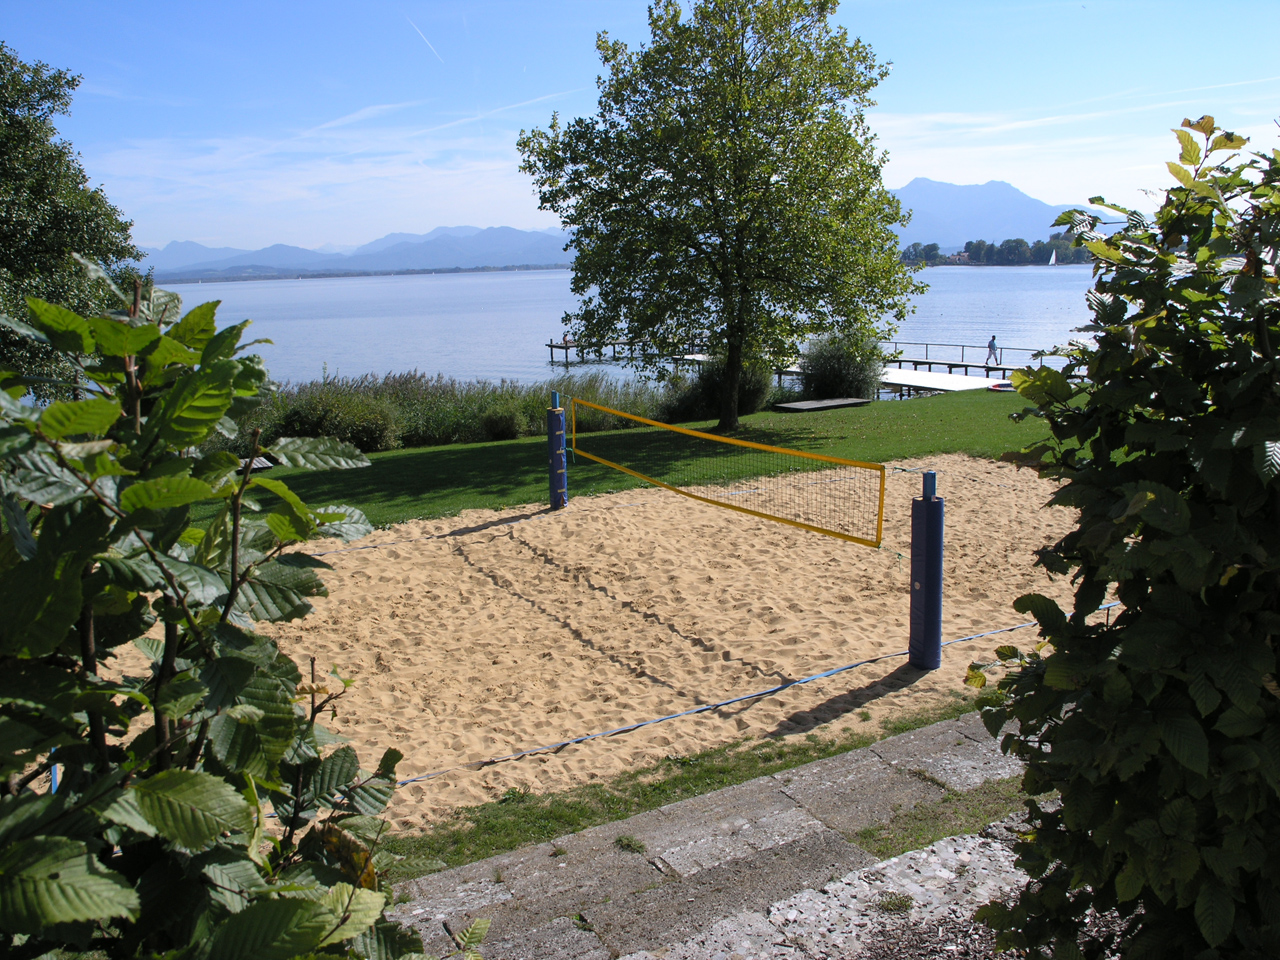 The beach volleyball court at Hofanger in Gstadt (Foto: © Ulli Reiter)